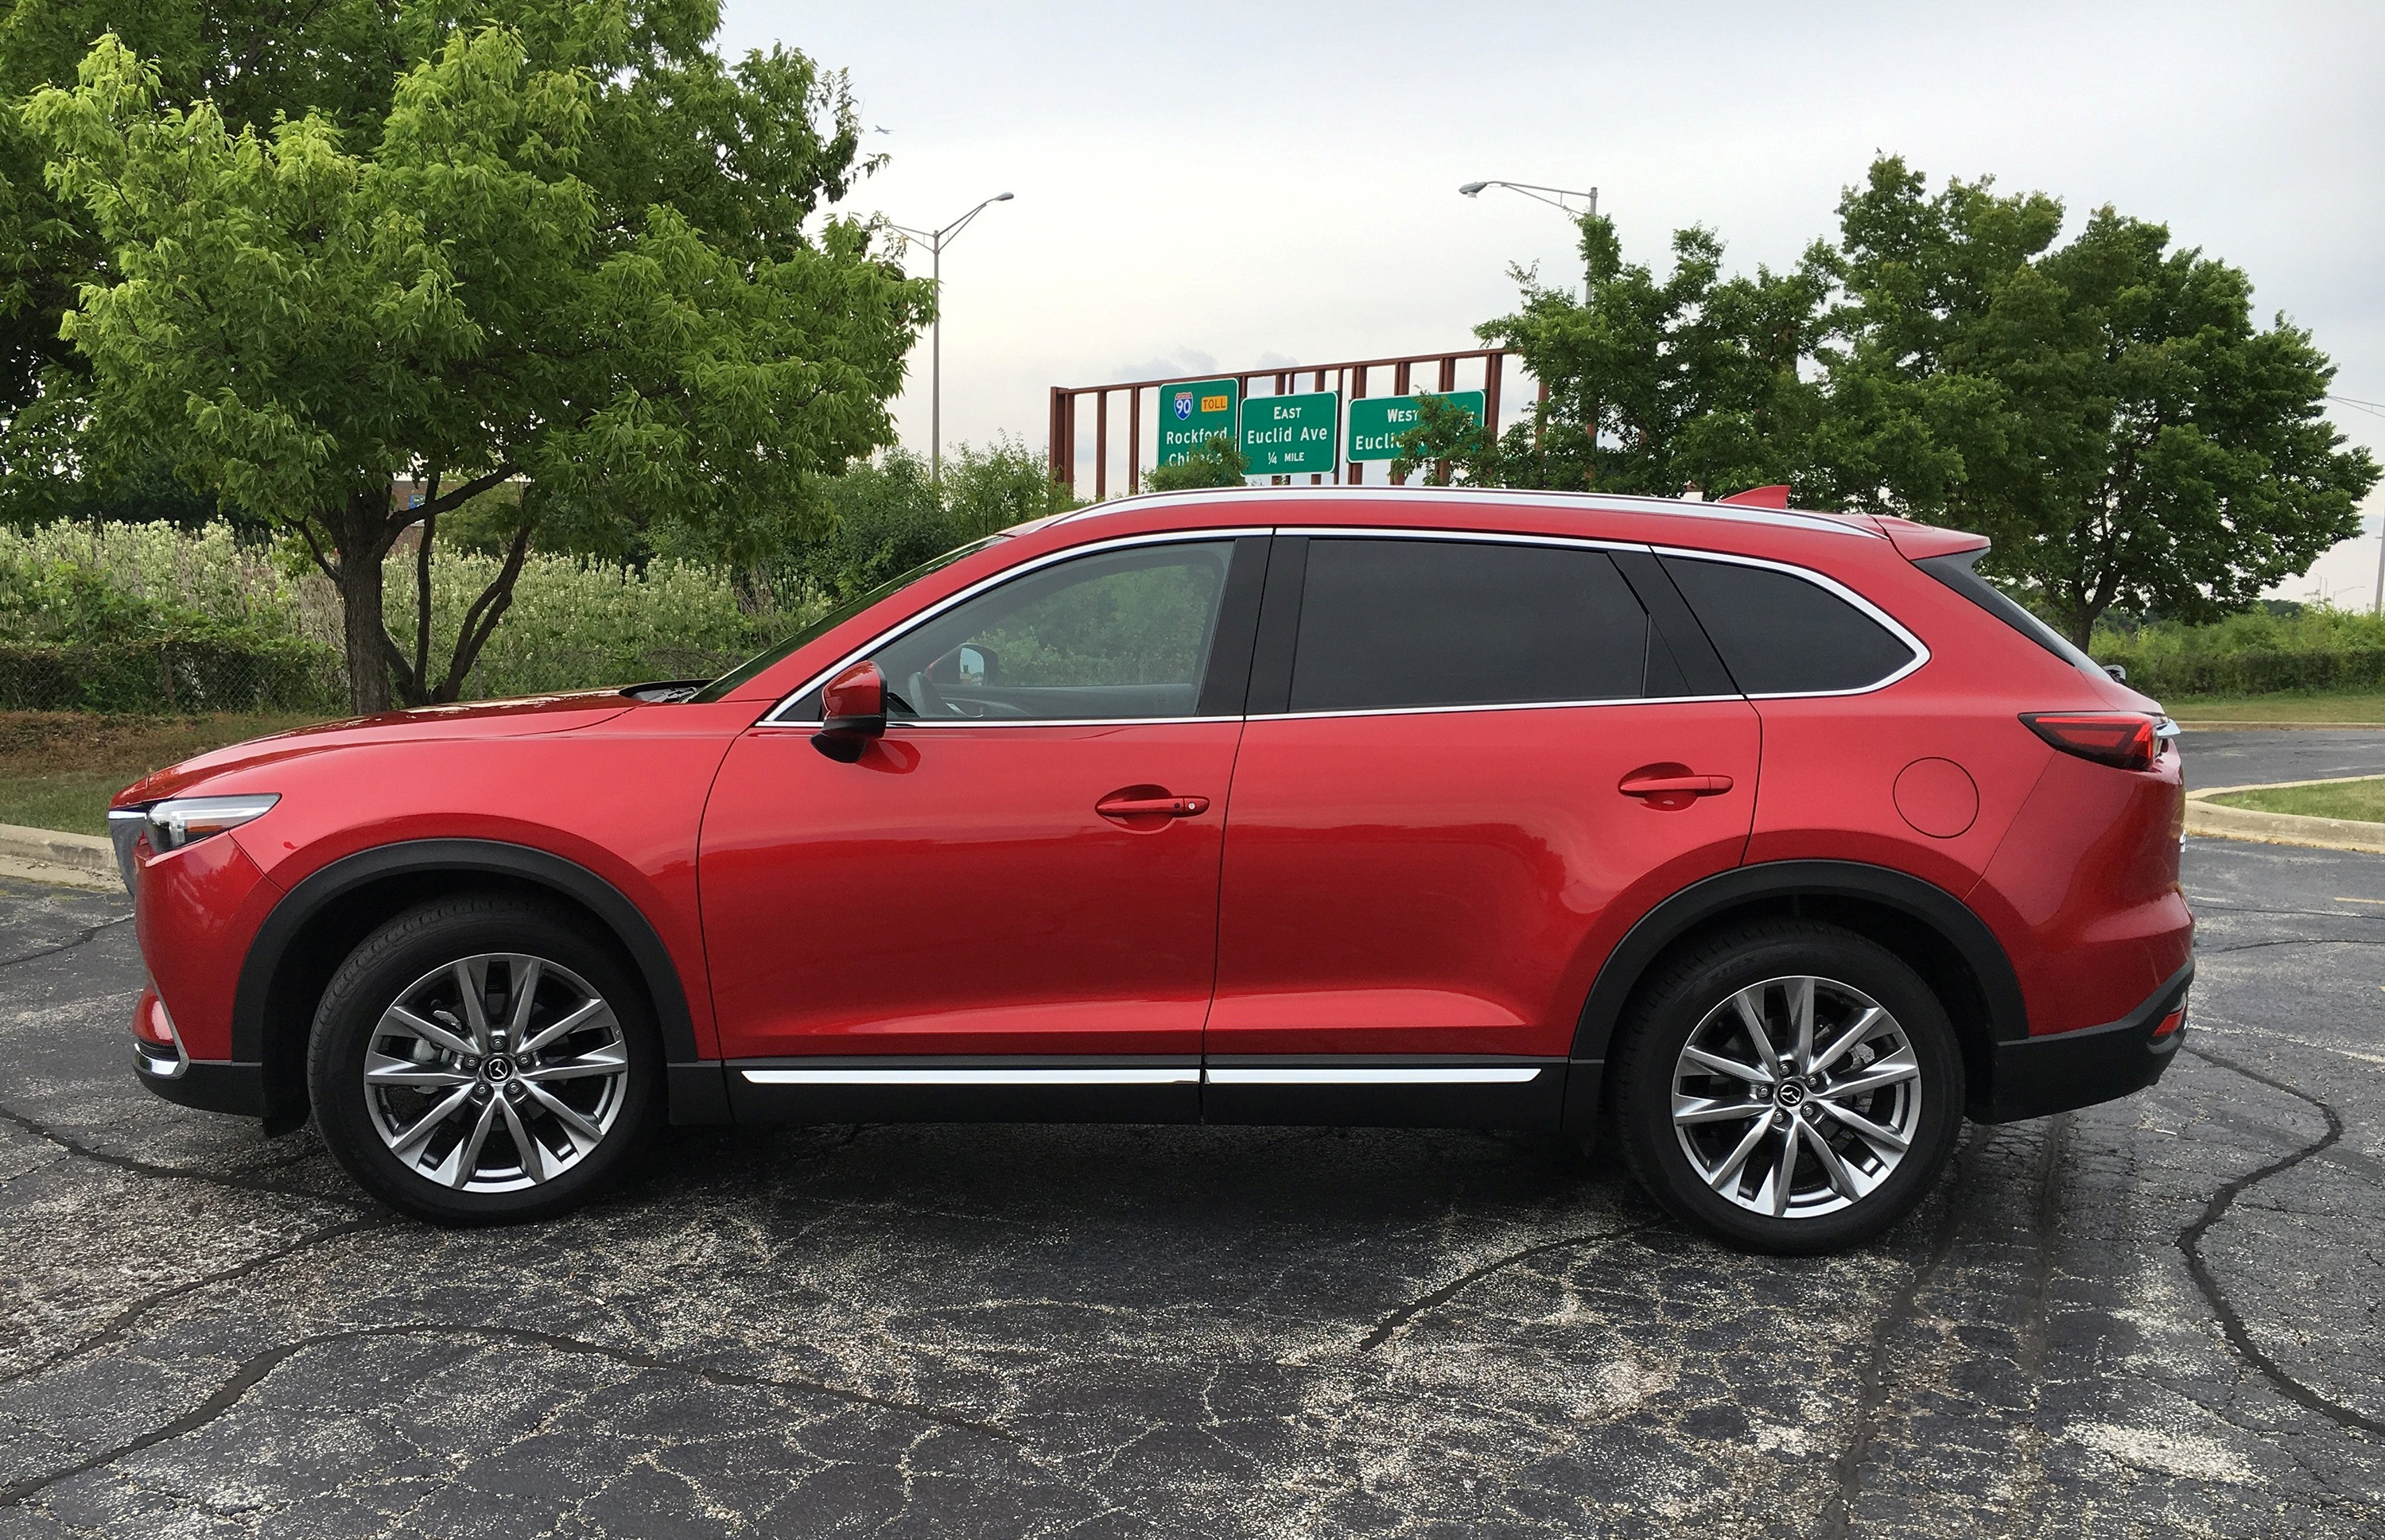 auto review 2016 mazda cx 9 crossover balances style with value power with economy hamodia. Black Bedroom Furniture Sets. Home Design Ideas